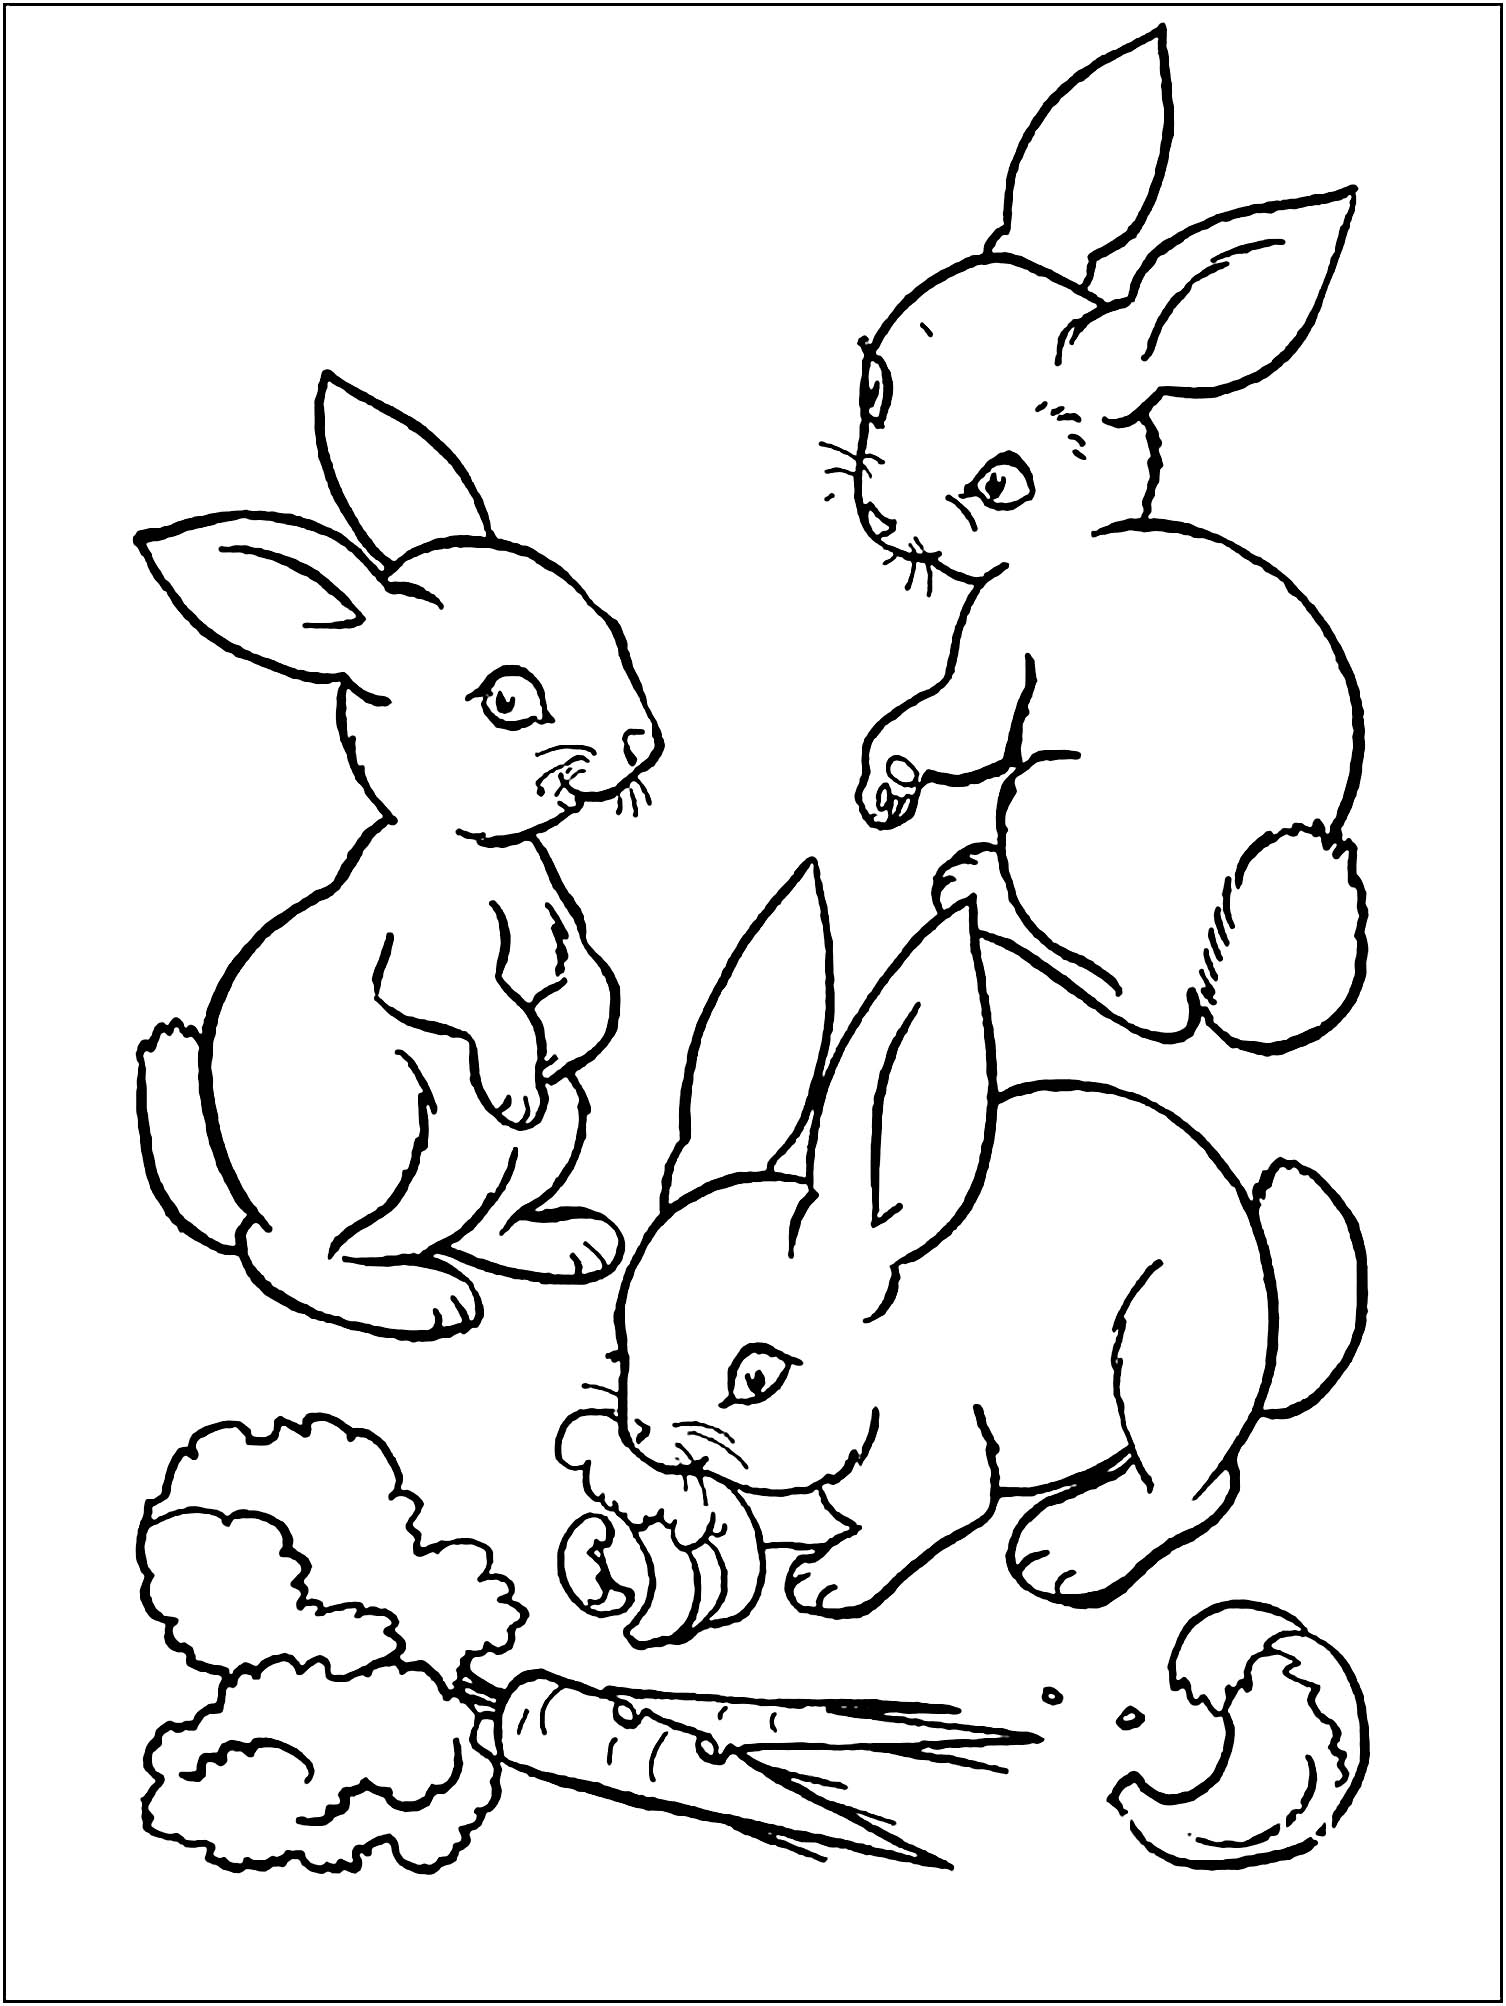 Funny Rabbit coloring page for kids